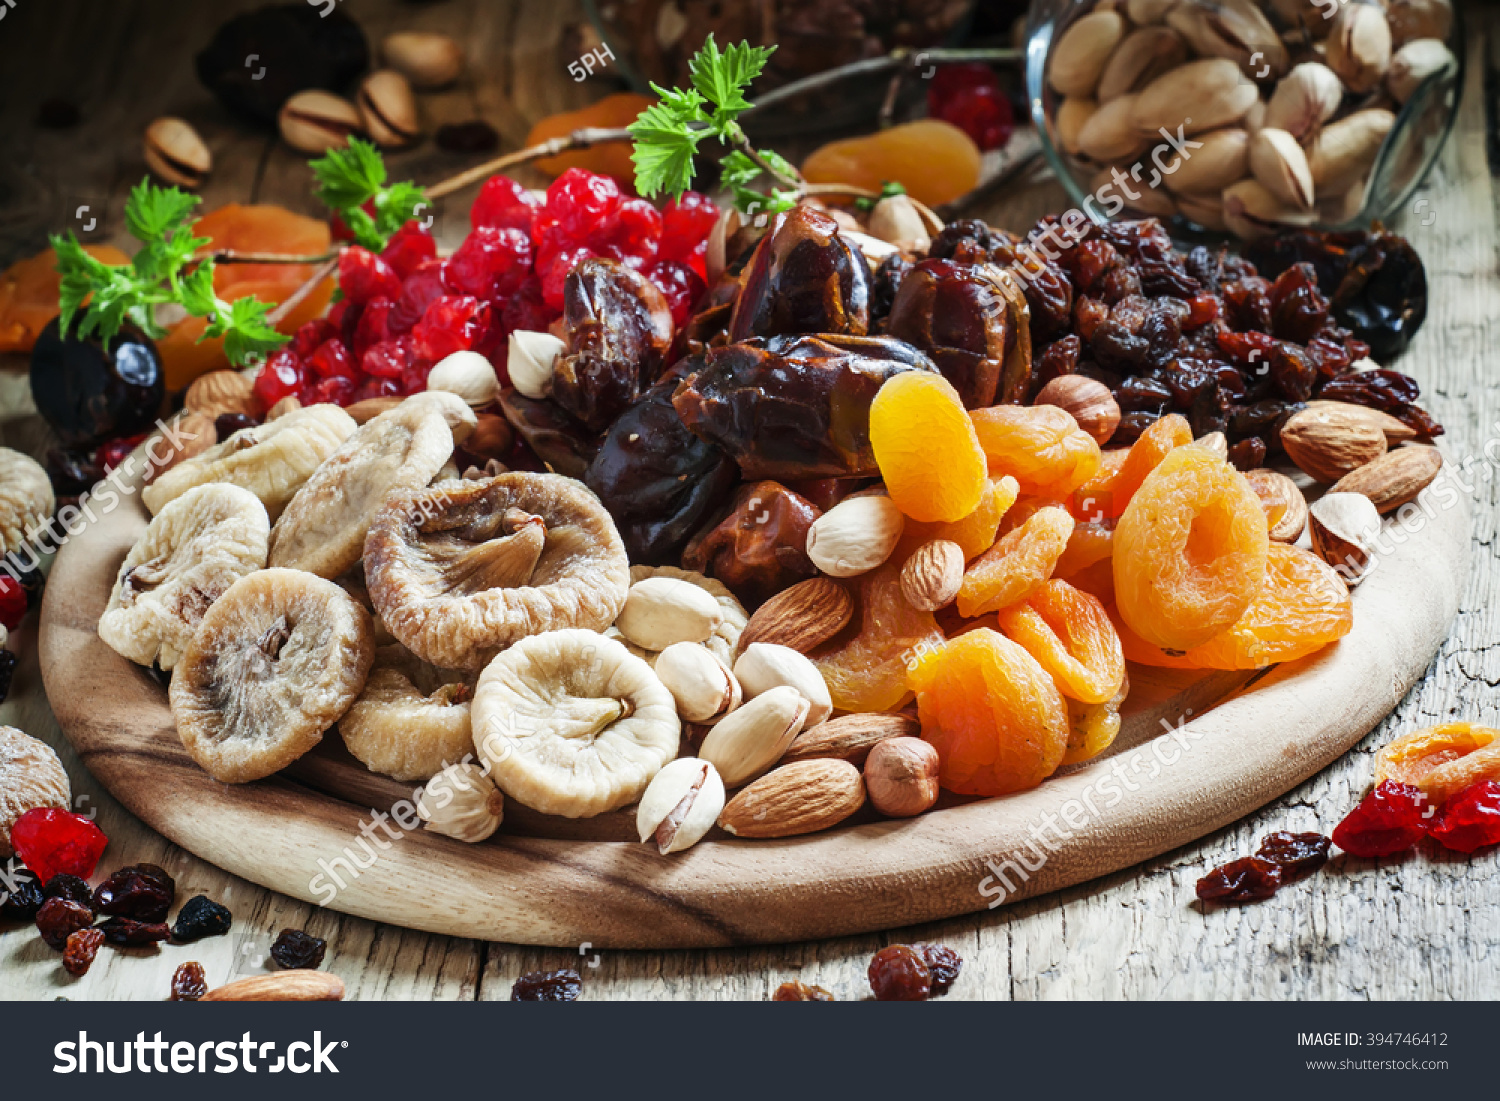 meat and fruit diet healthy dry fruit